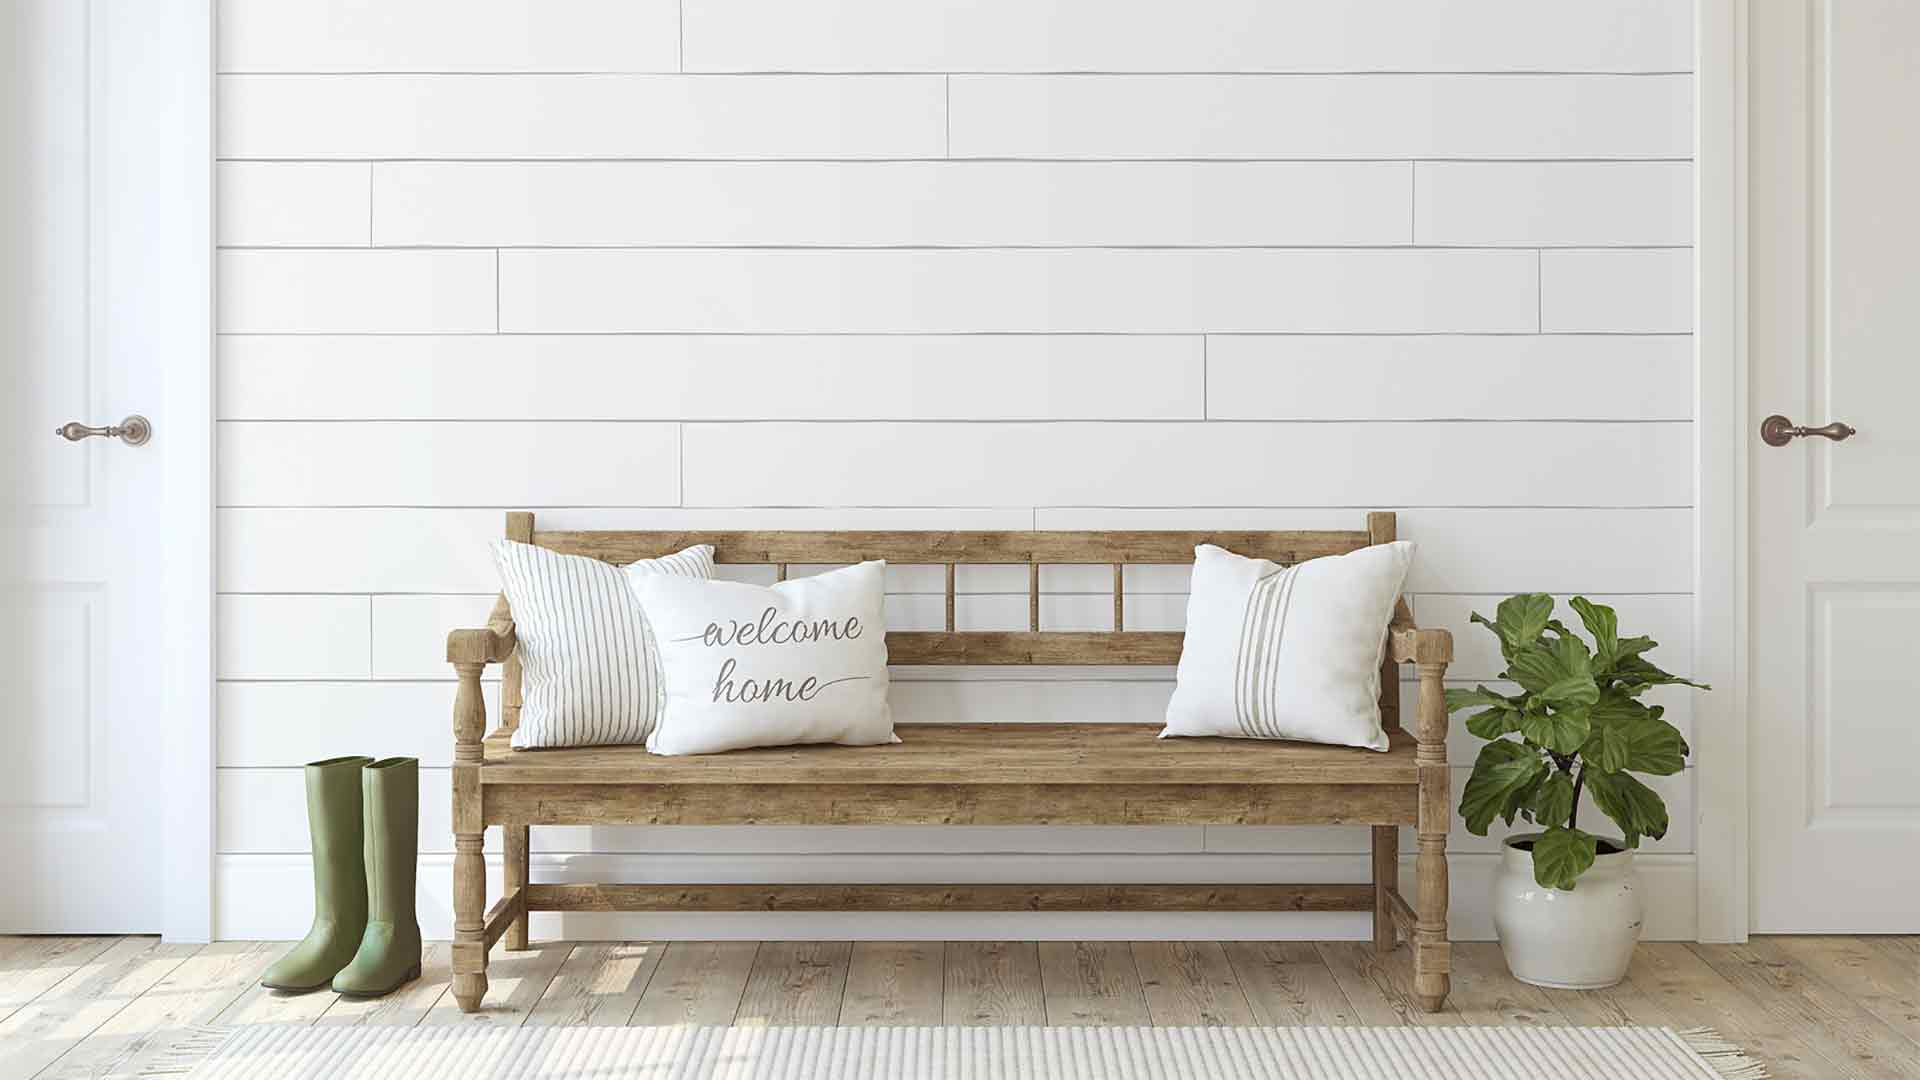 Shiplap wall in house's entryway